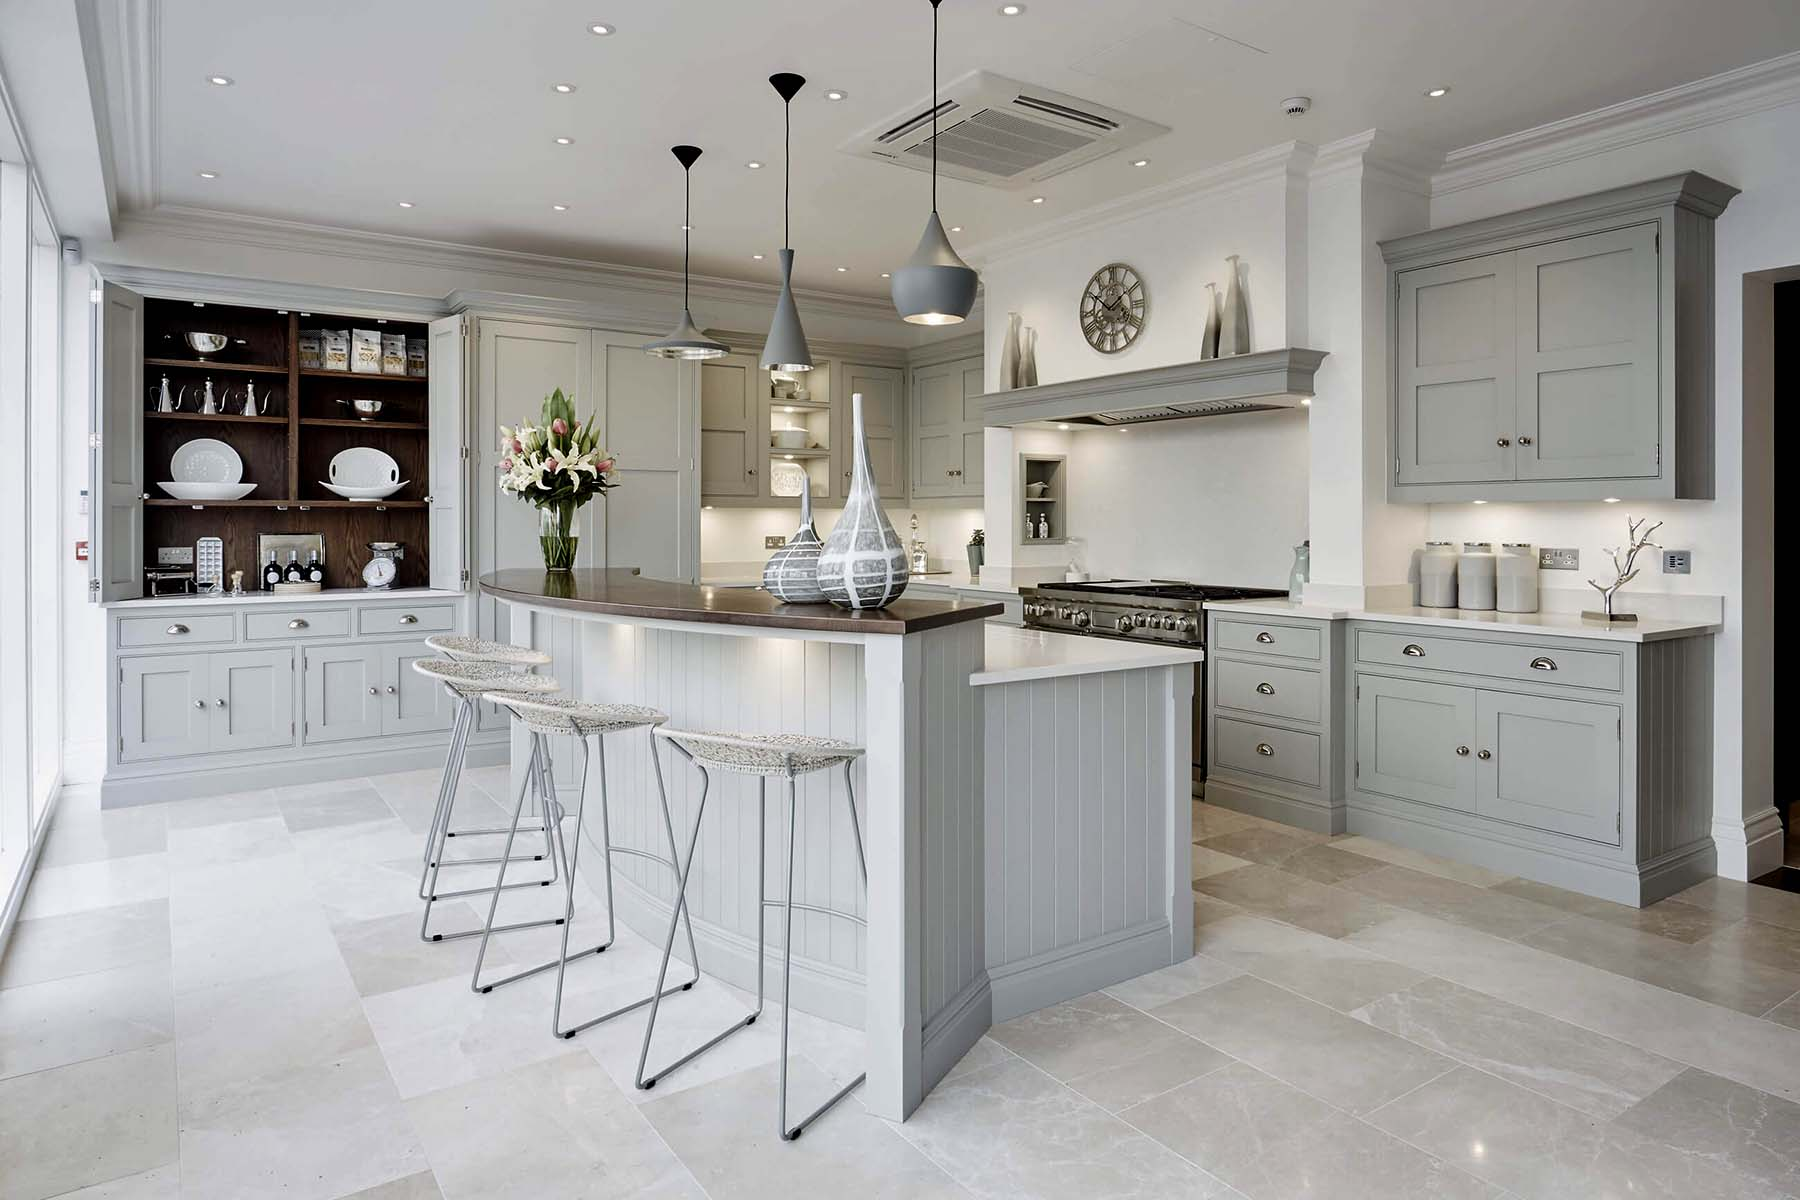 pale gray and white dream itchen design dark brown accents and stainless appliances